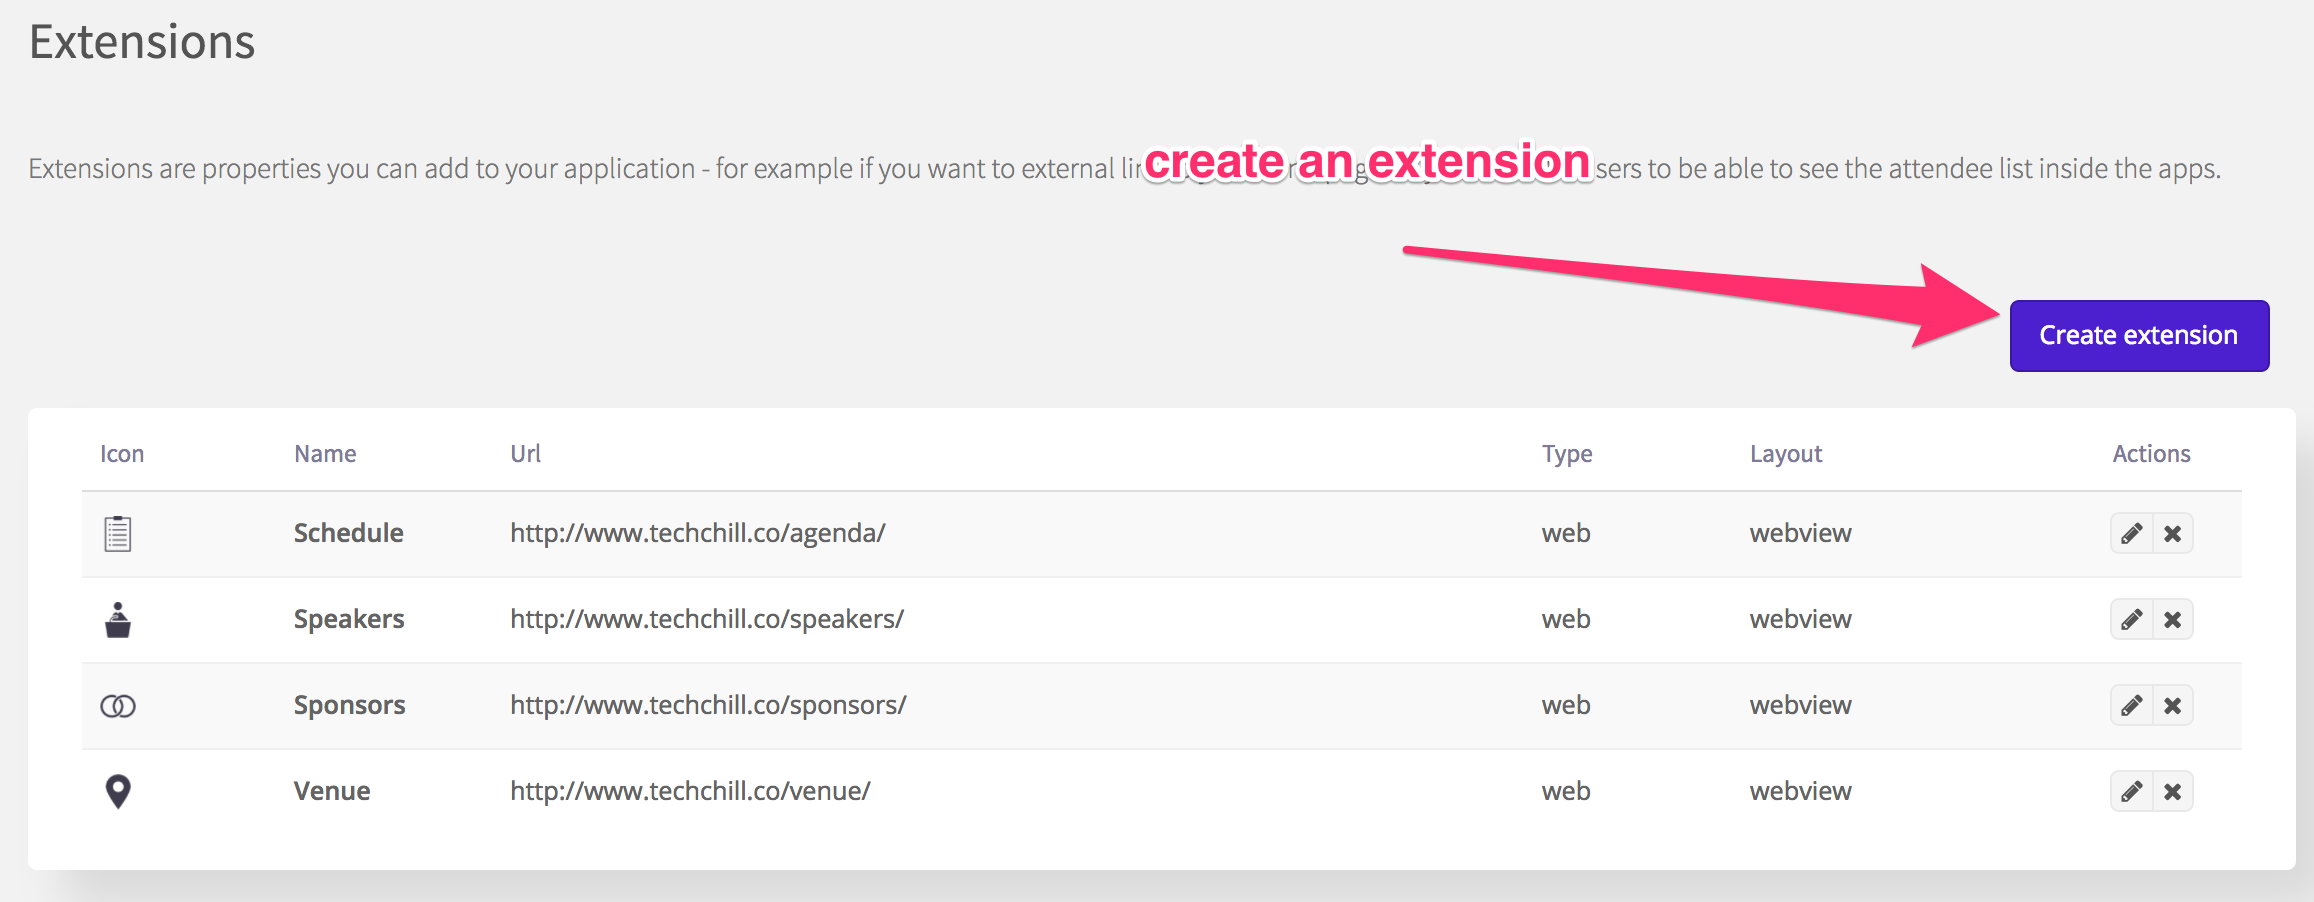 Create an extension 2